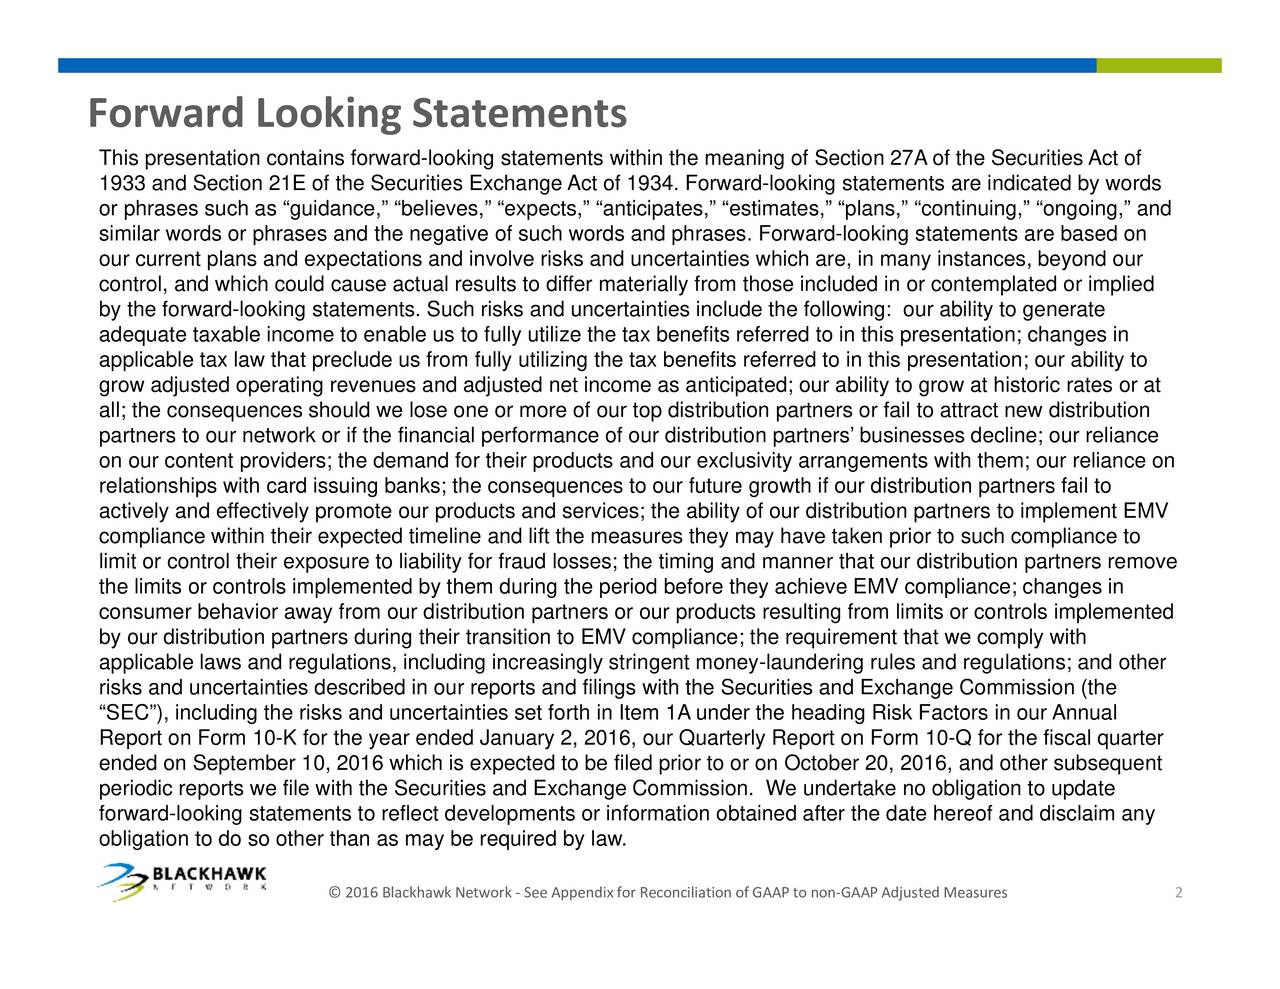 easures or contemplated or implied y to grow at historic rates or at date heredjustedisclaim any businesses decline; our reliance Form 10-Q for the fiscal quarter ction plans, continuing, ongoing, andhathat our distribution partners removeAAP ng statements are indicated by wordsour distribution partners fail to to non ard-lookfollowing: our ability to generate partners heading Risk Factorsin our Annualo update ity arrangemenachieve EMV compliance; changes inission (the s resulting from limits or controls implemented f terially from thoour distribution partnersgent moneyed prformation obtained after the6, and other subsequent or ppendix ed net income as anticipated; our abilit See more of our top distribution partnenuary 2, 2016, our Quarterly Report on expects, fully utilize the tax benefits referred ties set forth in Item 1A under the ing Exchange Act ch risks and uncertthe consequences to our future growthf ourgs etworke Secur ility for fraud losses; the timing and manner Statements curities and Exchange Commission. We as may be required by law. the financial performaduring their transition to EMV compliance; the demand for their products and our exclusiv 016 ooking Thi193or anraSeecby adaqpgroallahjonrelaticomlptheclinisappriSEReport on Form 10-K for the year ended Jaifsgly stri Forward